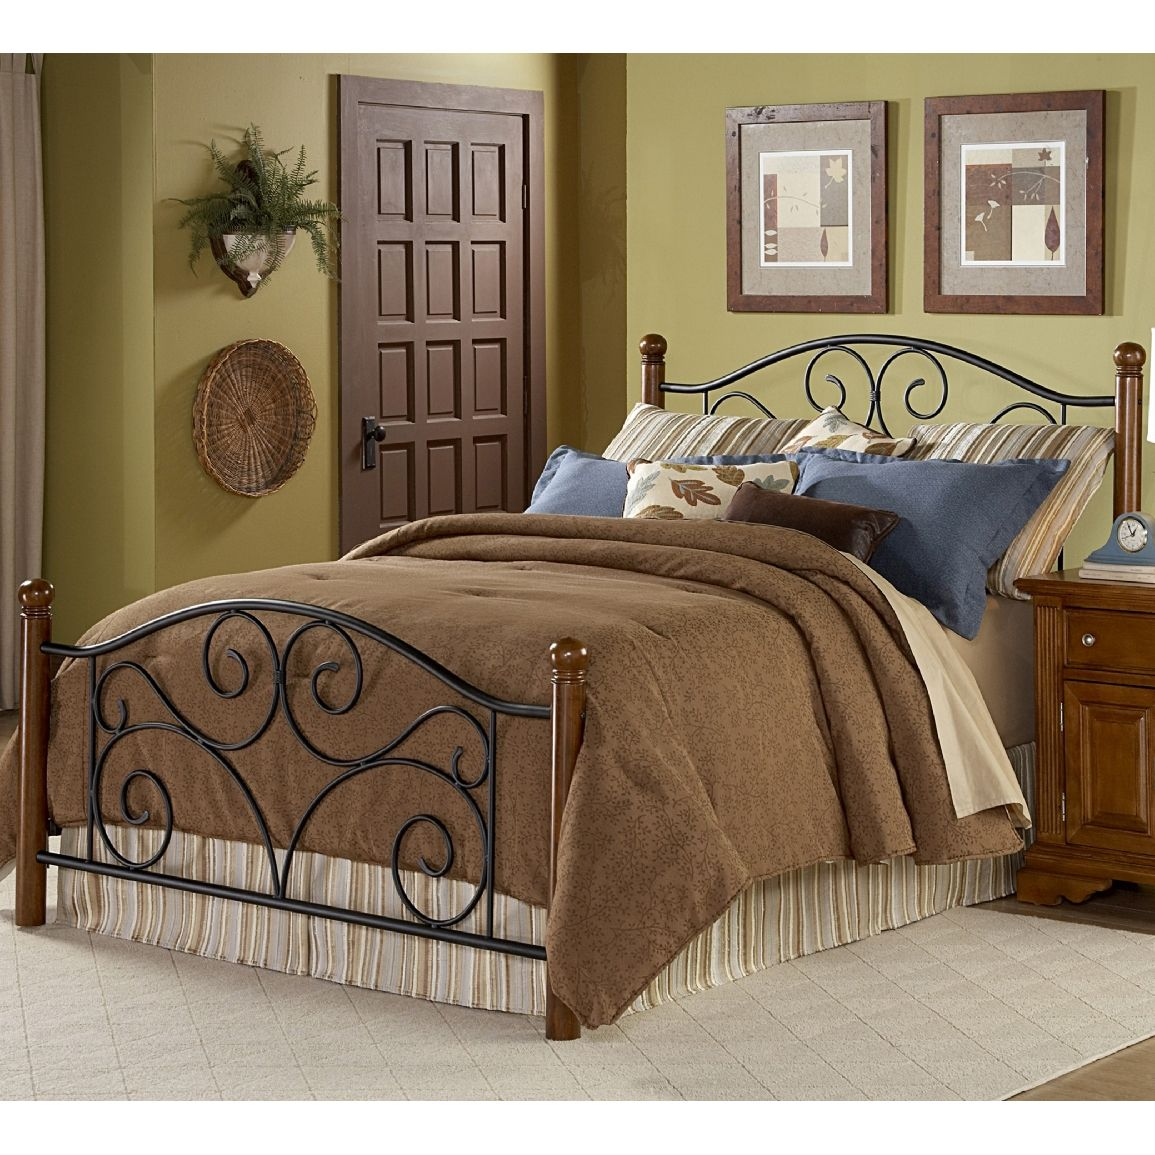 Online Shopping Bedding Furniture Electronics Jewelry Clothing More Bed Styling Furniture Queen Size